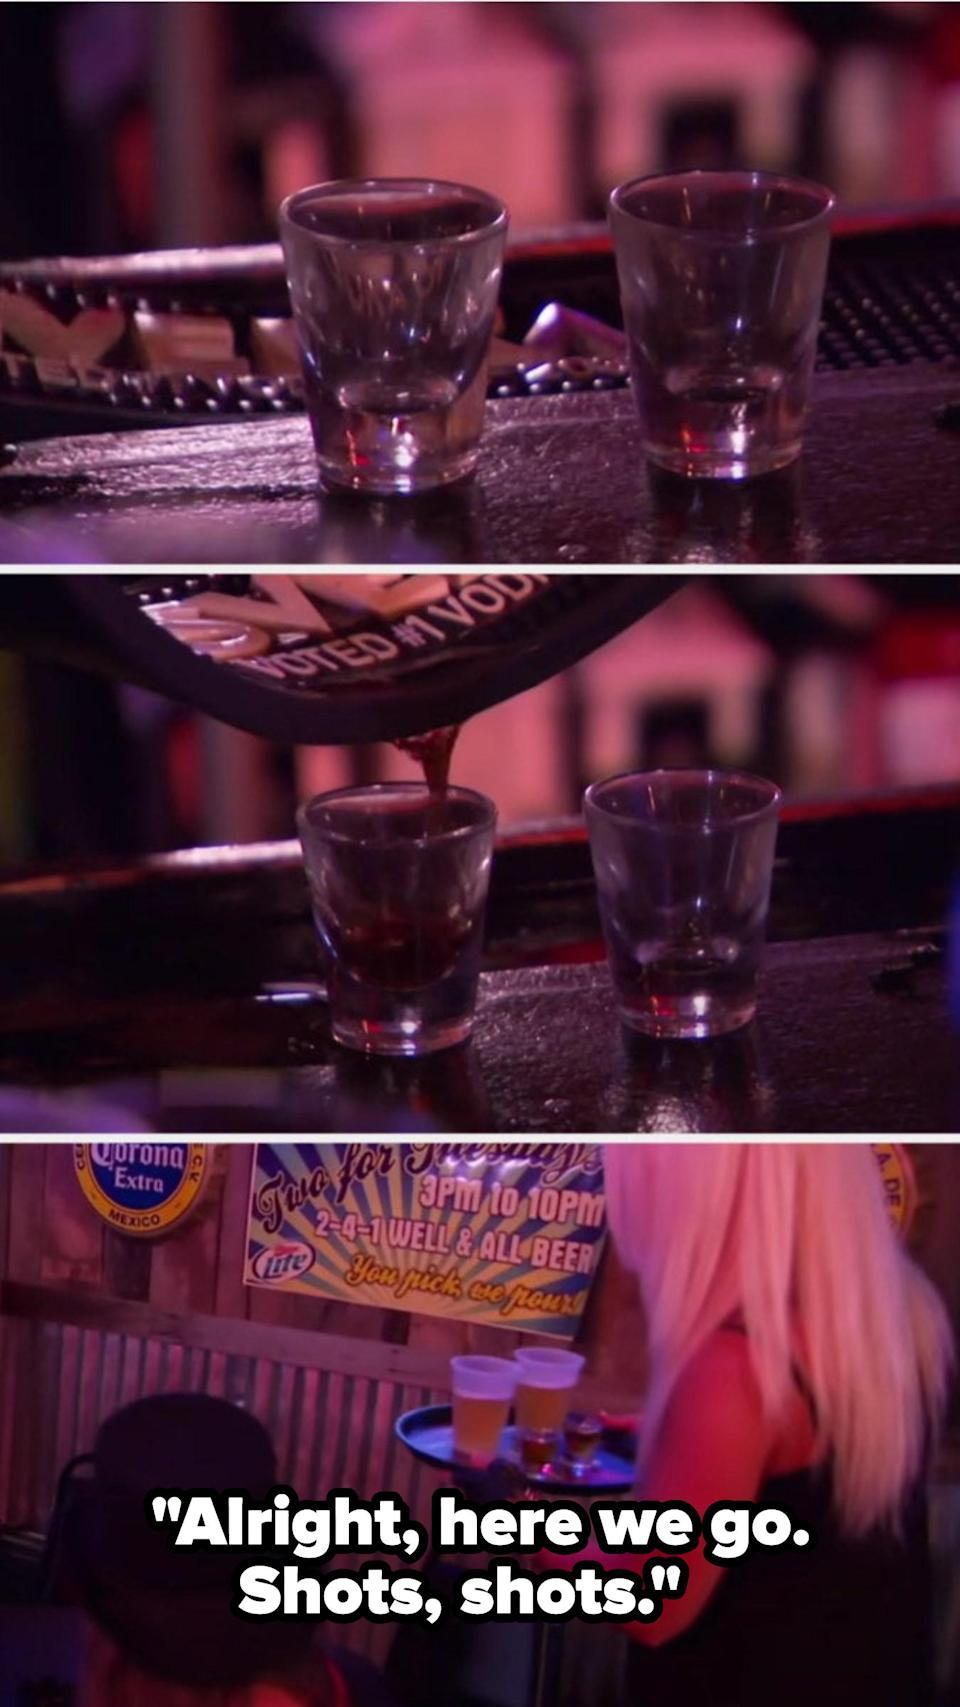 A woman pouring spilt liquor from a bar spill mat into shot glasses and serving them to her friends